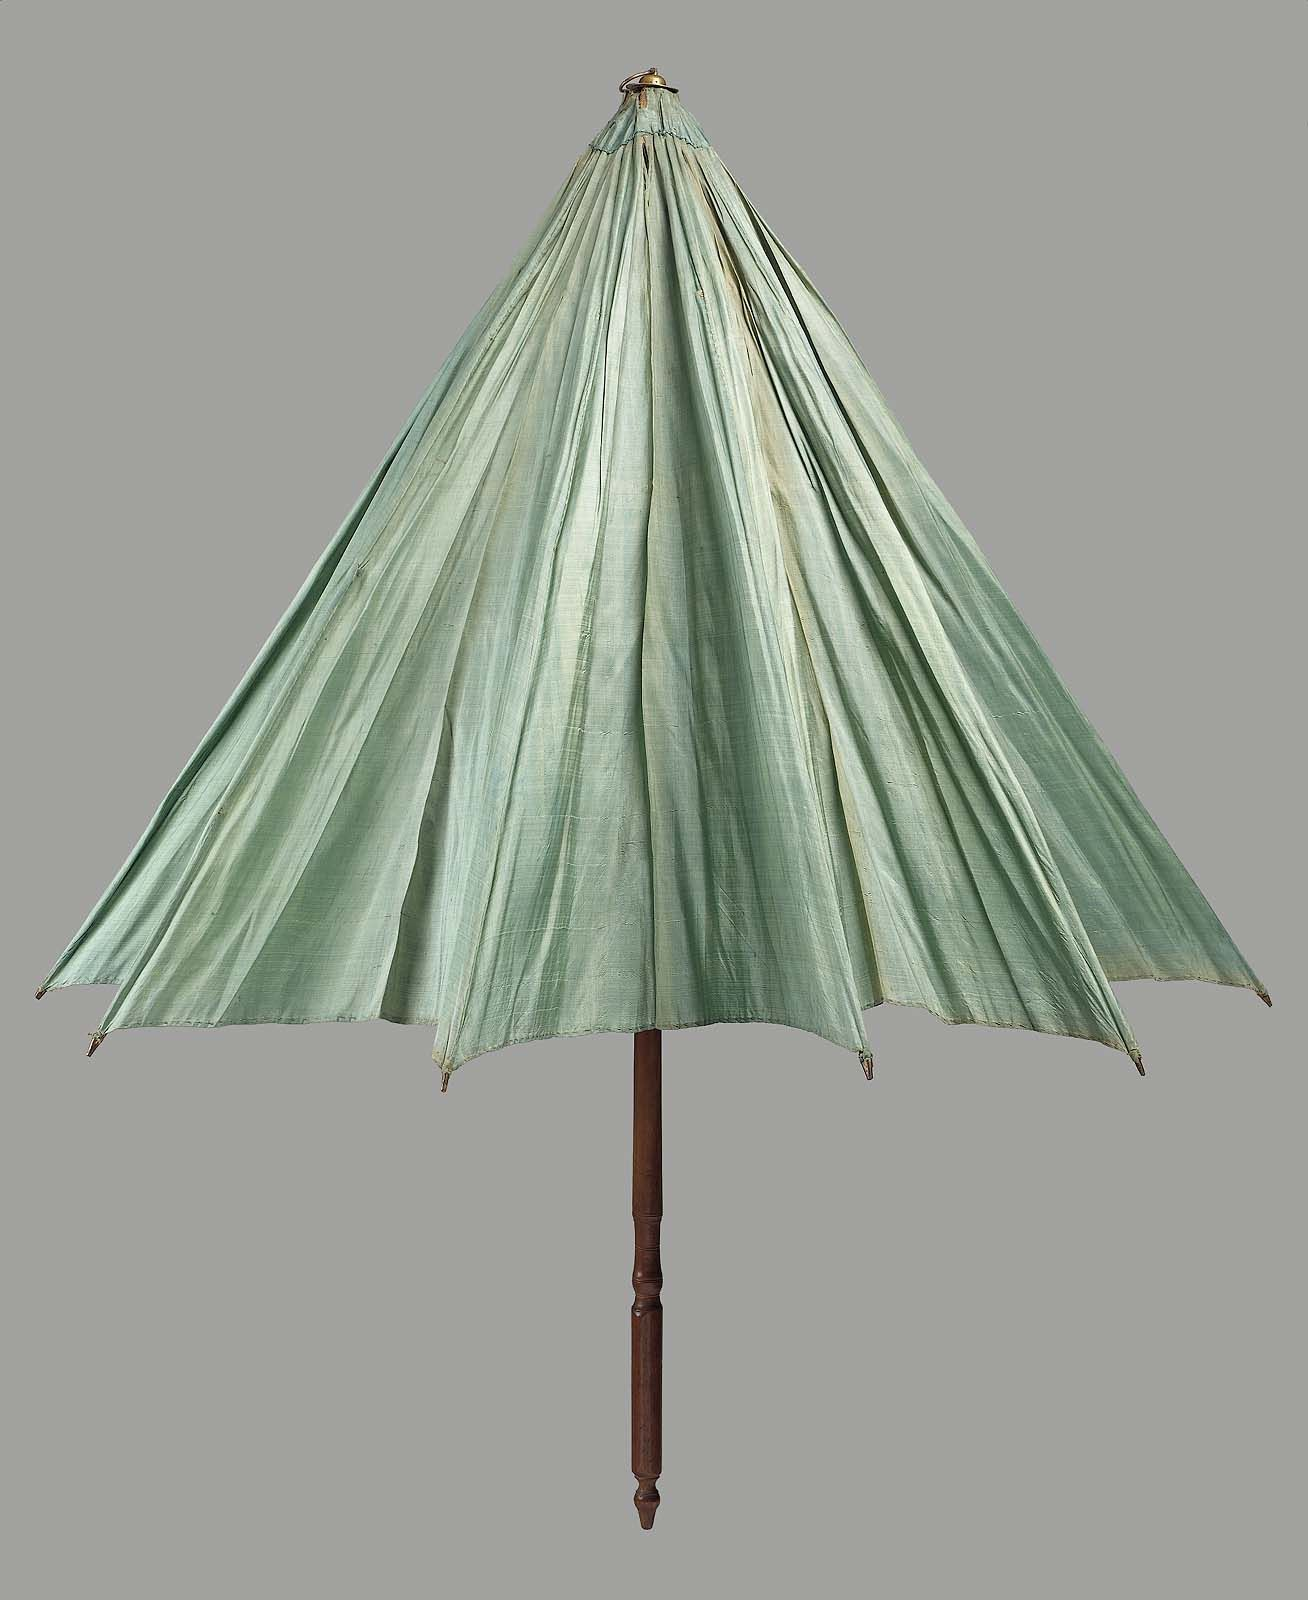 Late 18th to early 19th century, America - Parasol - Plain weave silk cover, wood stick, whale bone ribs, brass ferule and tips